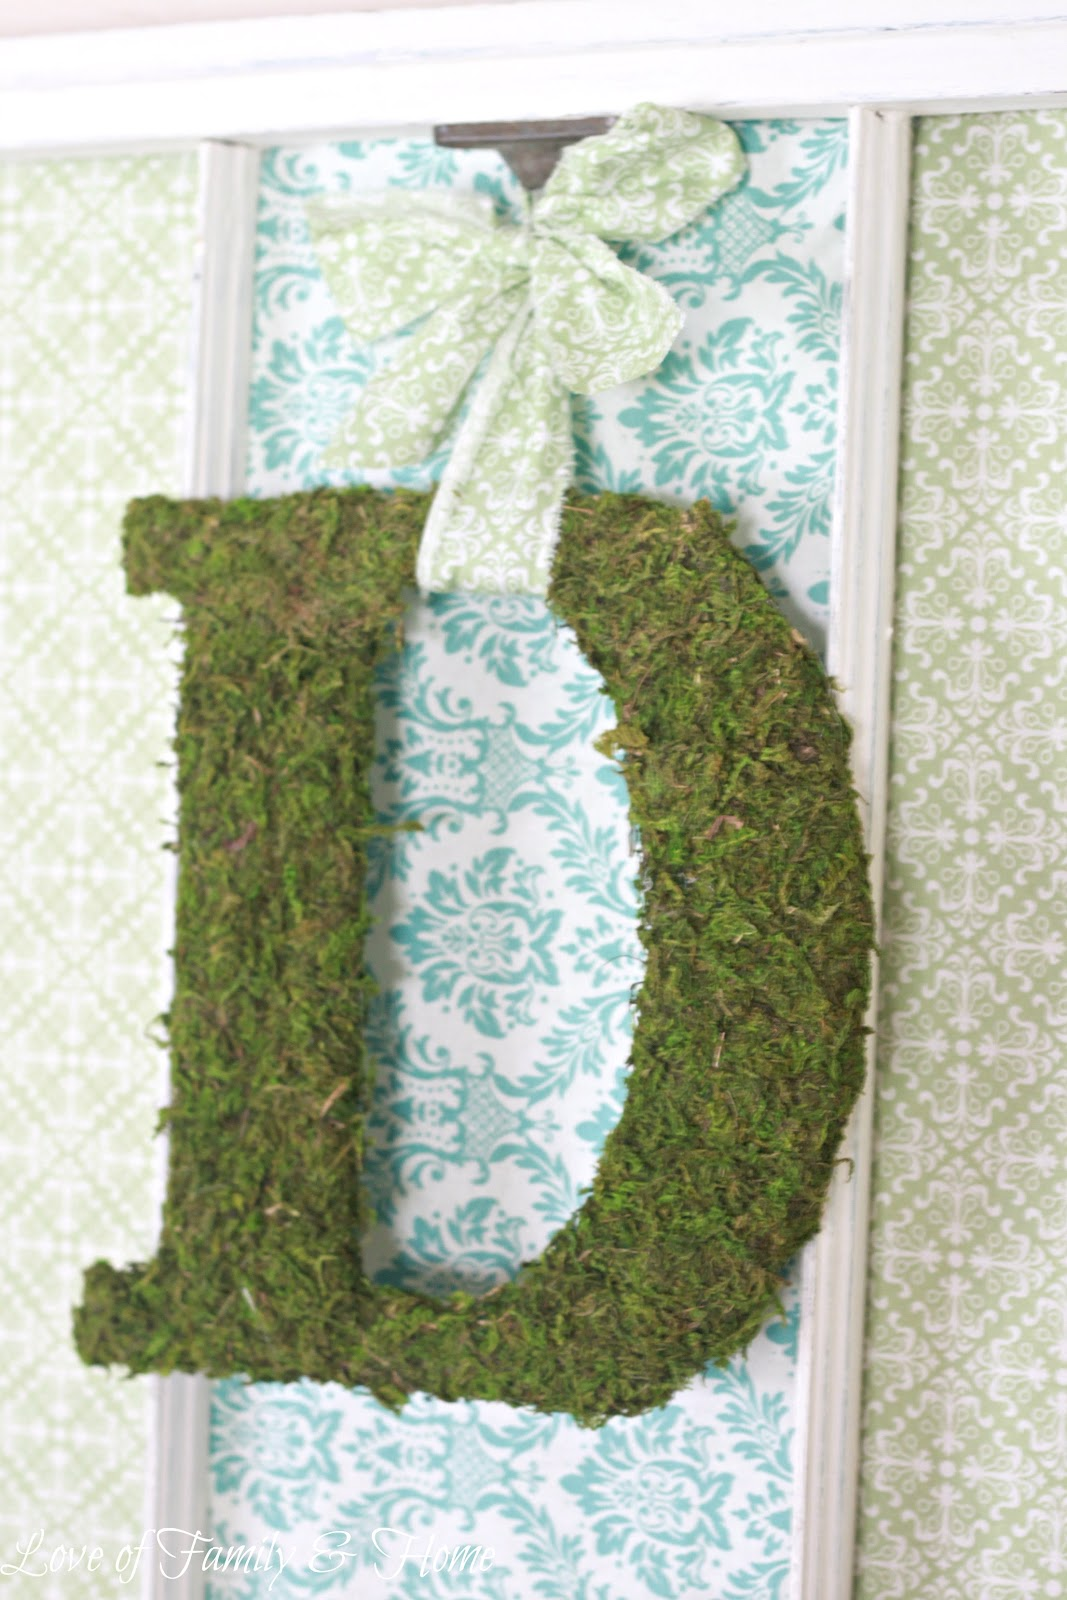 2012 Family Home Decorating Ideas: Love Of Family & Home